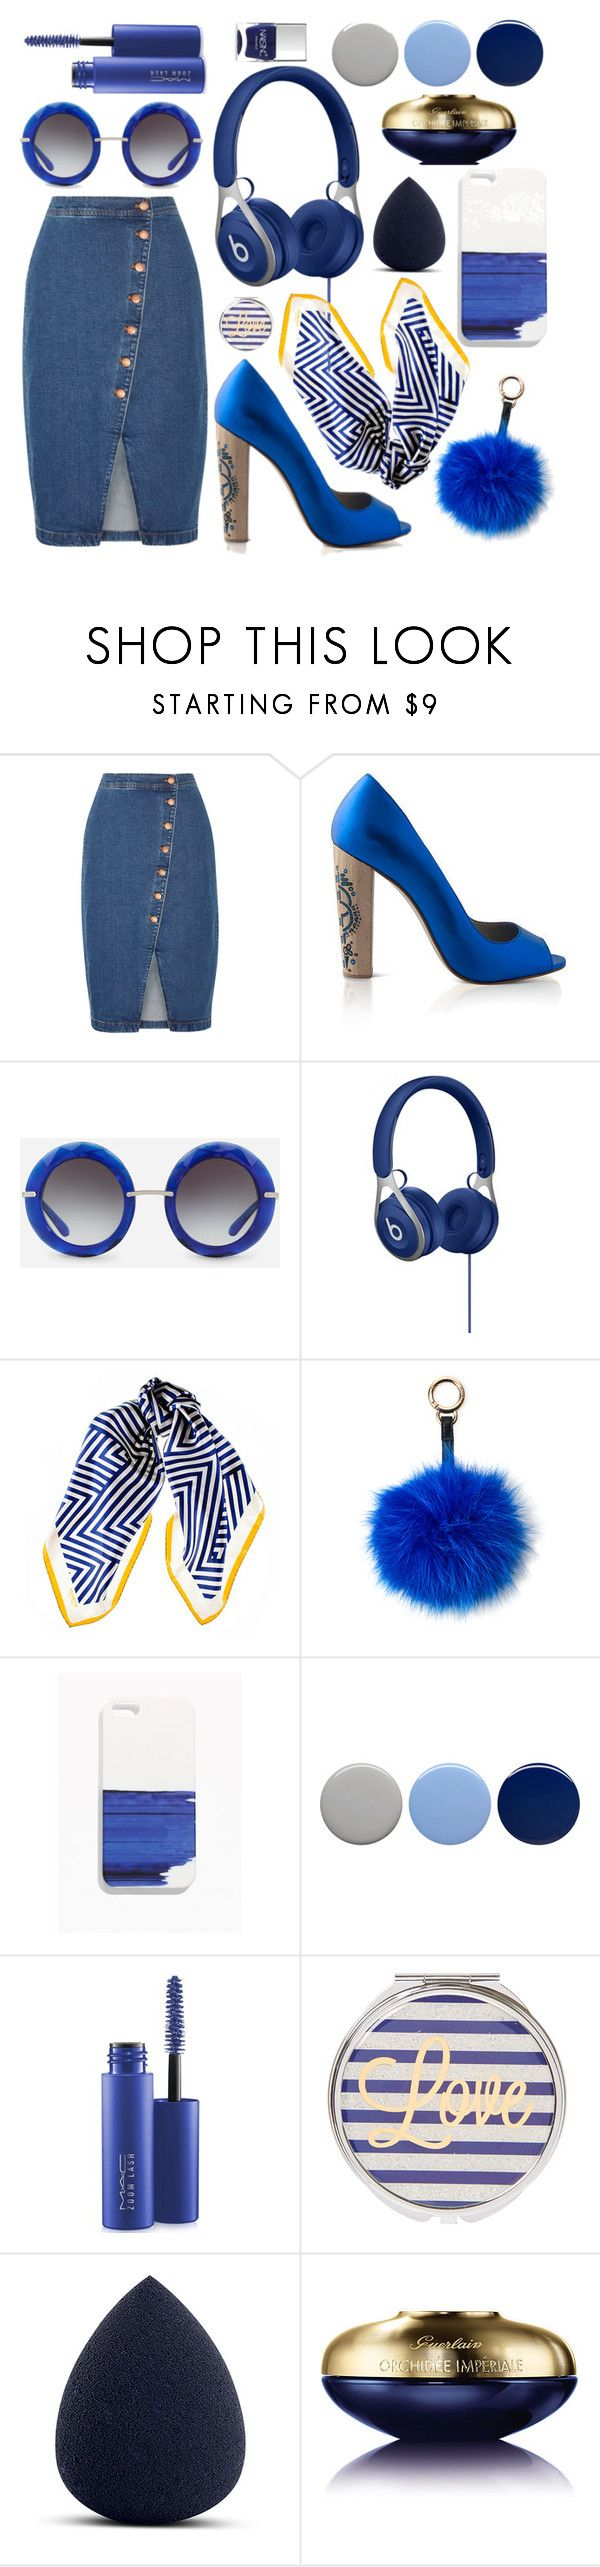 """Dark blue hue"" by mo-saique ❤ liked on Polyvore featuring Madewell, Dolce&Gabbana, Black, Surell, Burberry, MAC Cosmetics, Guerlain and Nails Inc."